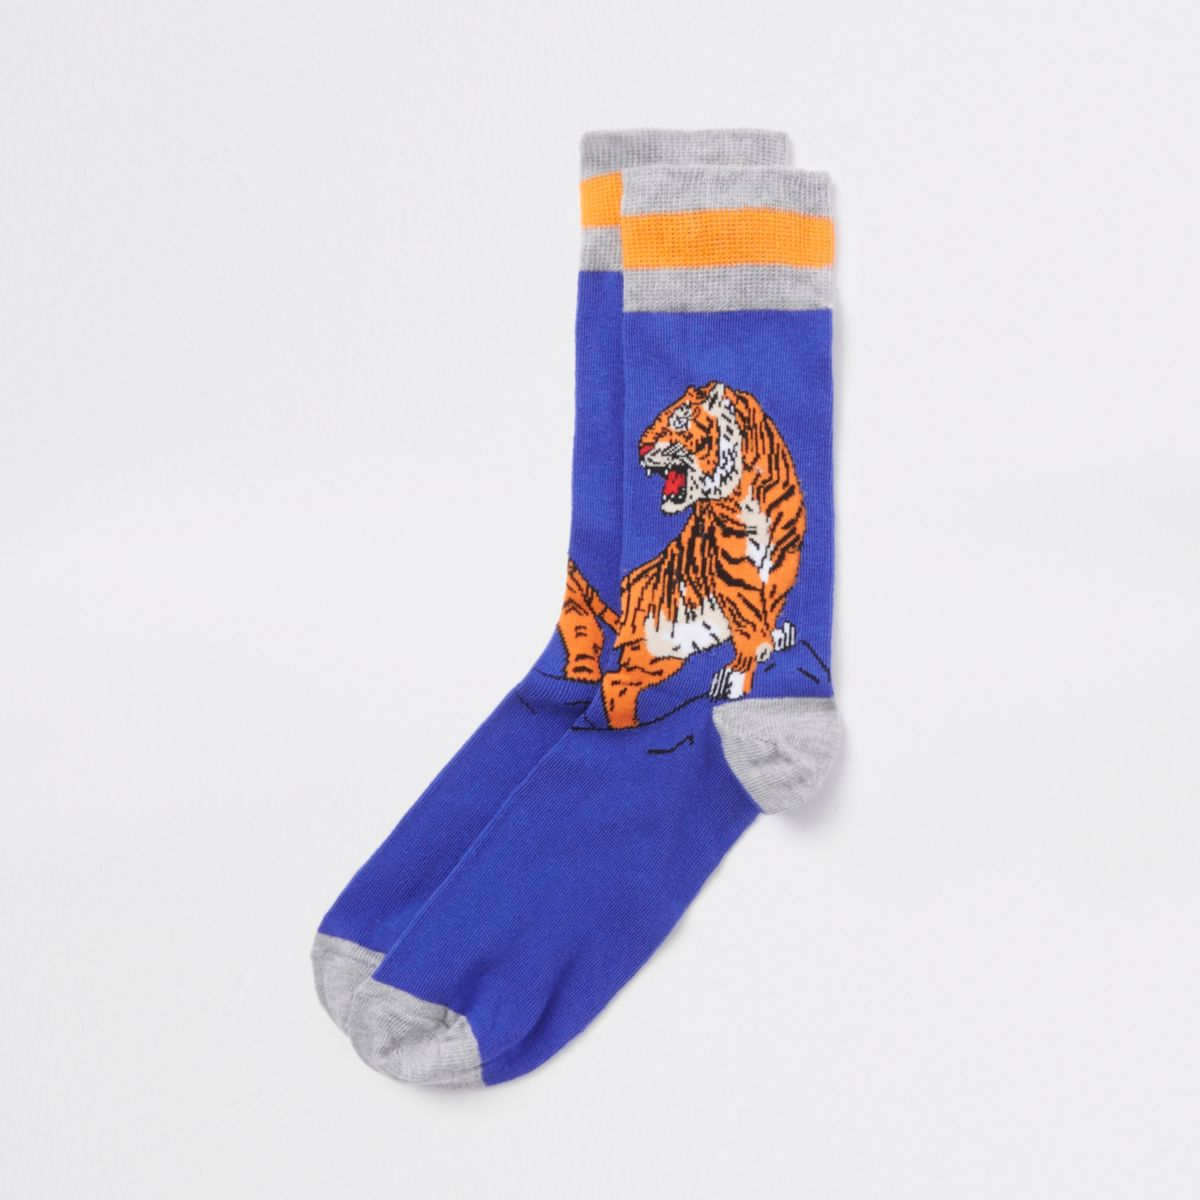 Blue tiger embroidered novelty socks